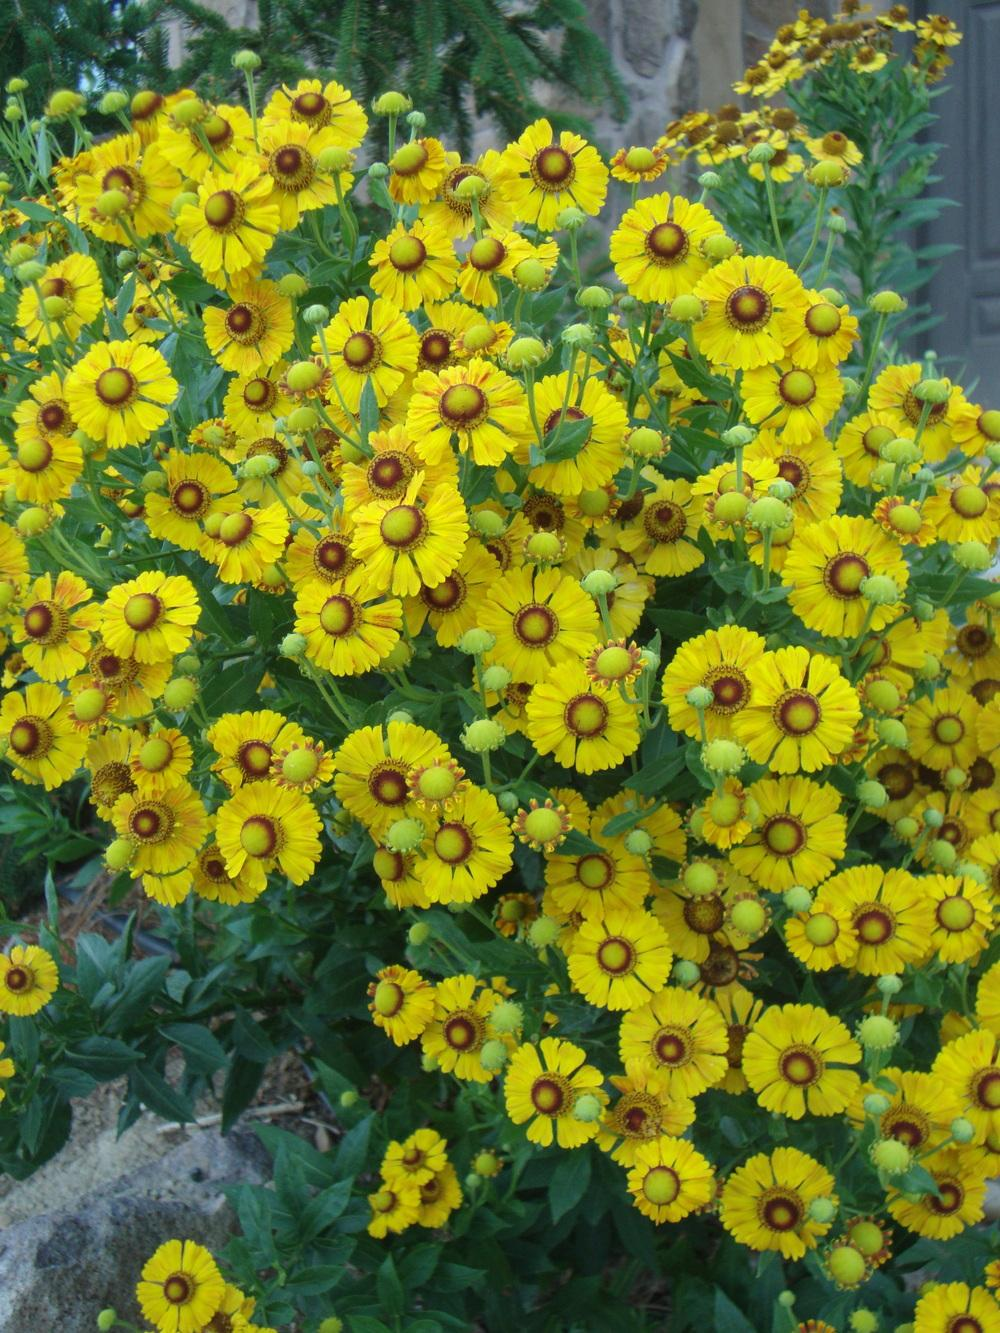 Photo of Helenium uploaded by Paul2032